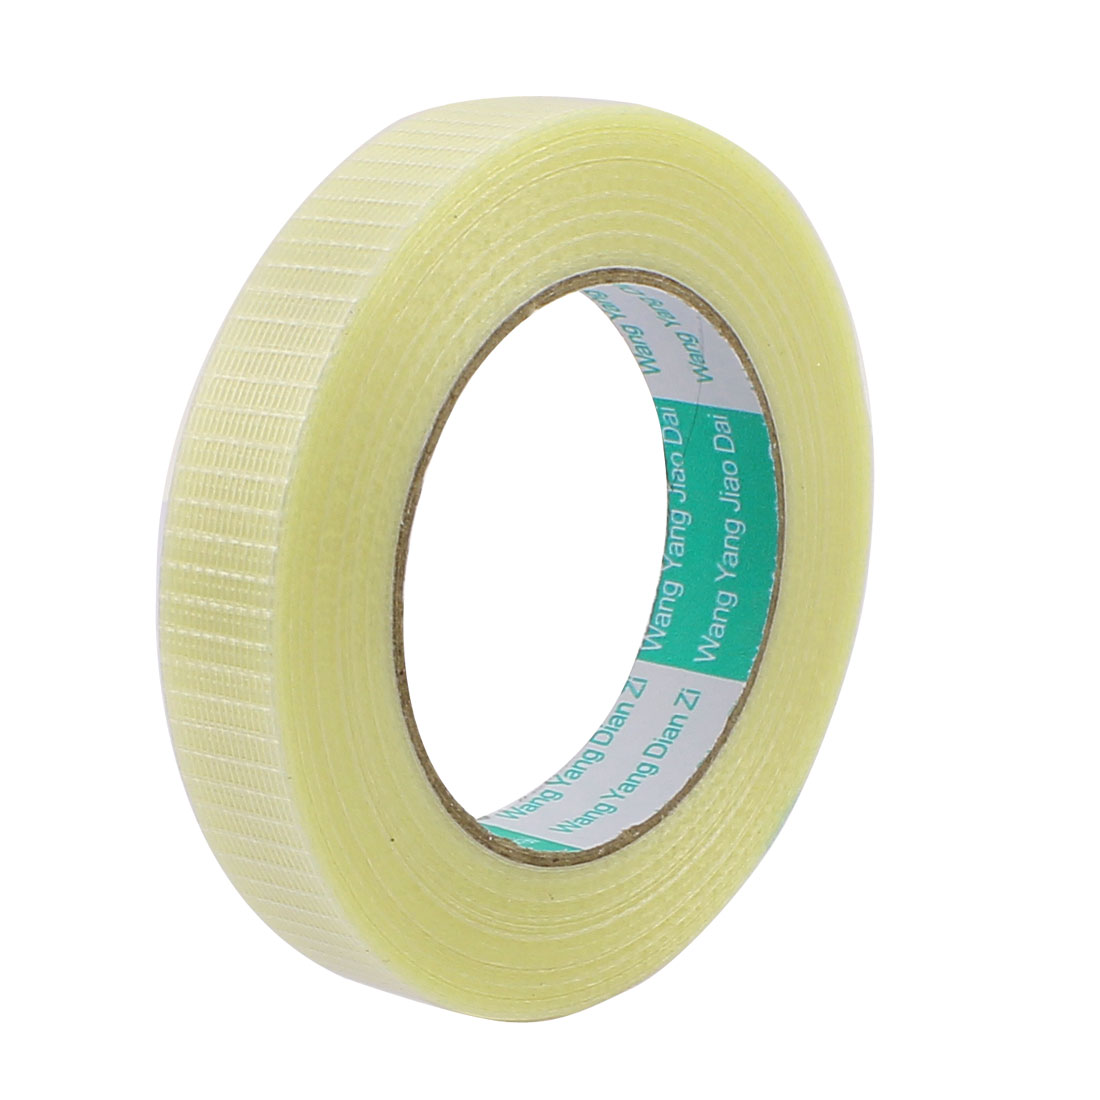 25mm Height 50M Length Long Adhesive Insulating Grid Glass Fiber Tape Roll